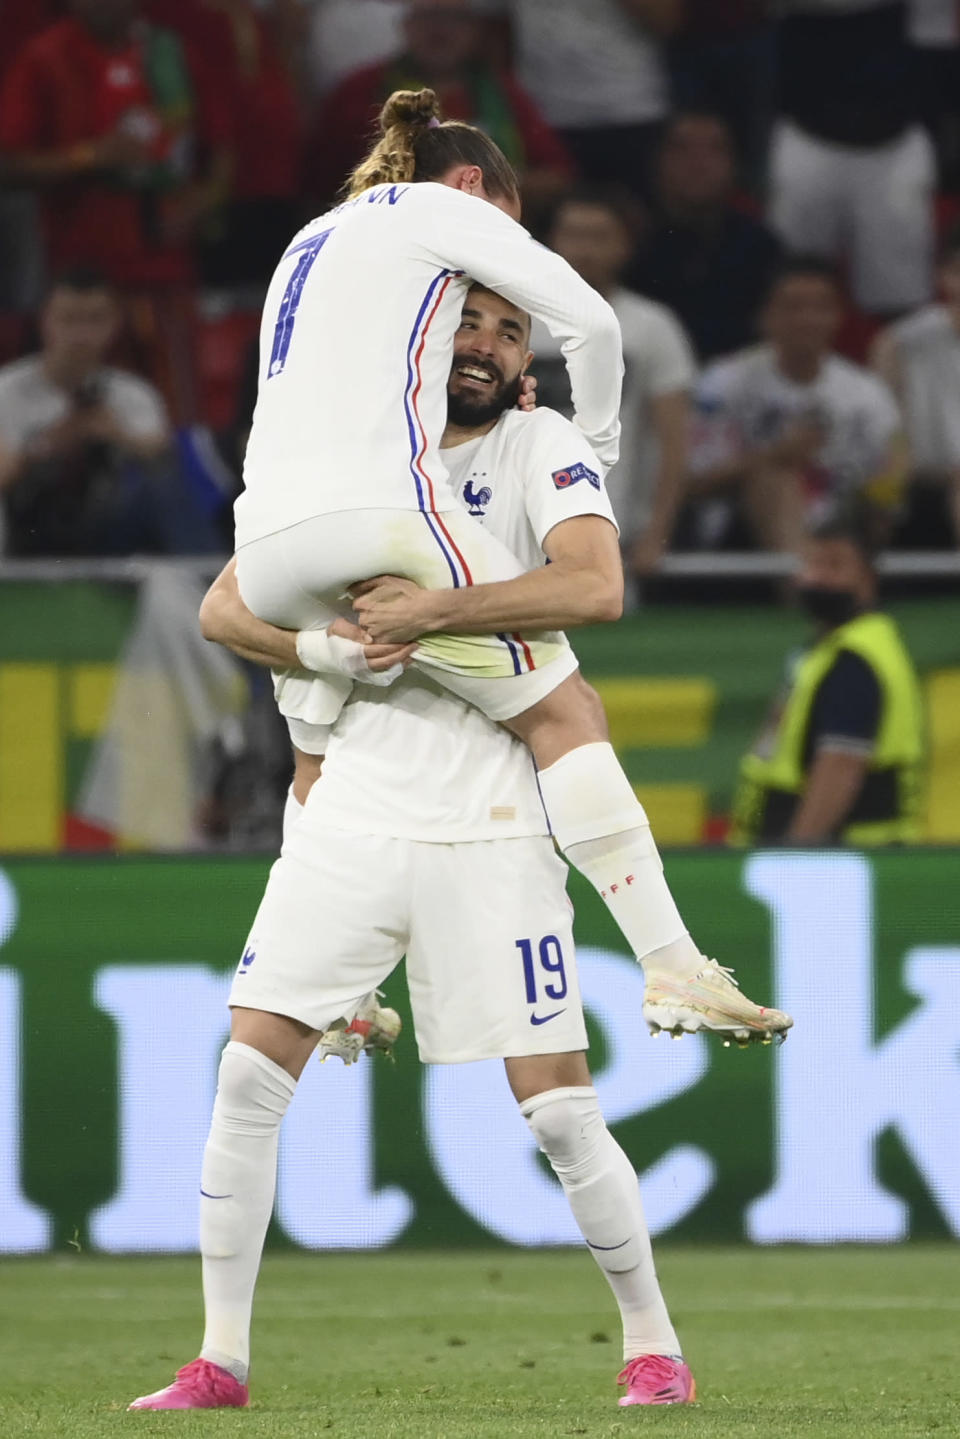 France's Karim Benzema celebrates with Antoine Griezmann, left,after scoring his side's second goal during the Euro 2020 soccer championship group F match between Portugal and France at the Puskas Arena in Budapest, Wednesday, June 23, 2021. (Franck Fife, Pool photo via AP)